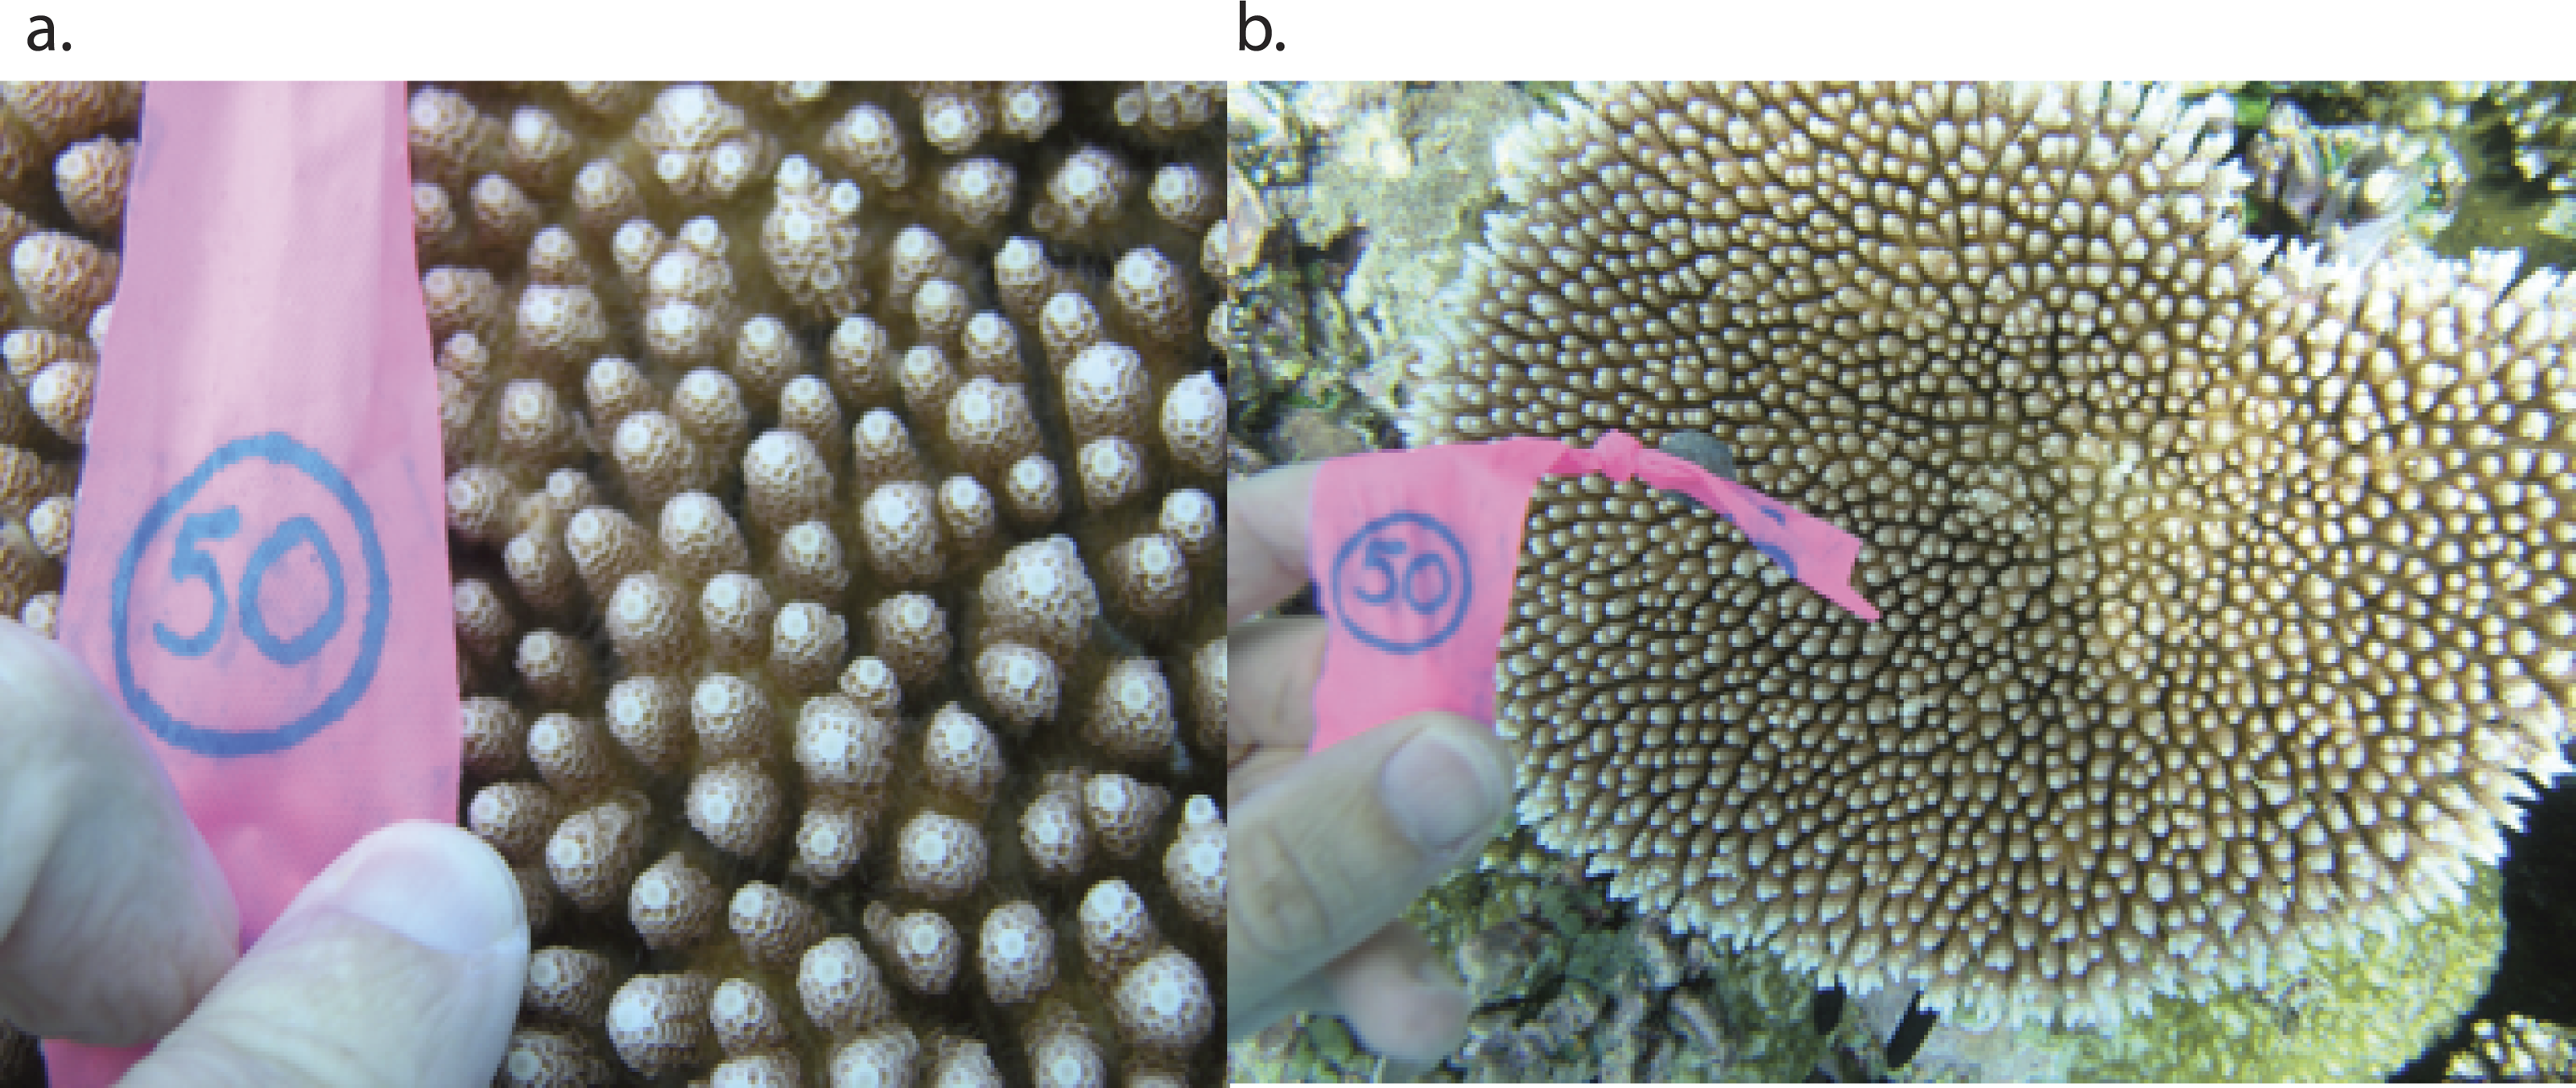 Population genetic structure between Yap and Palau for the coral